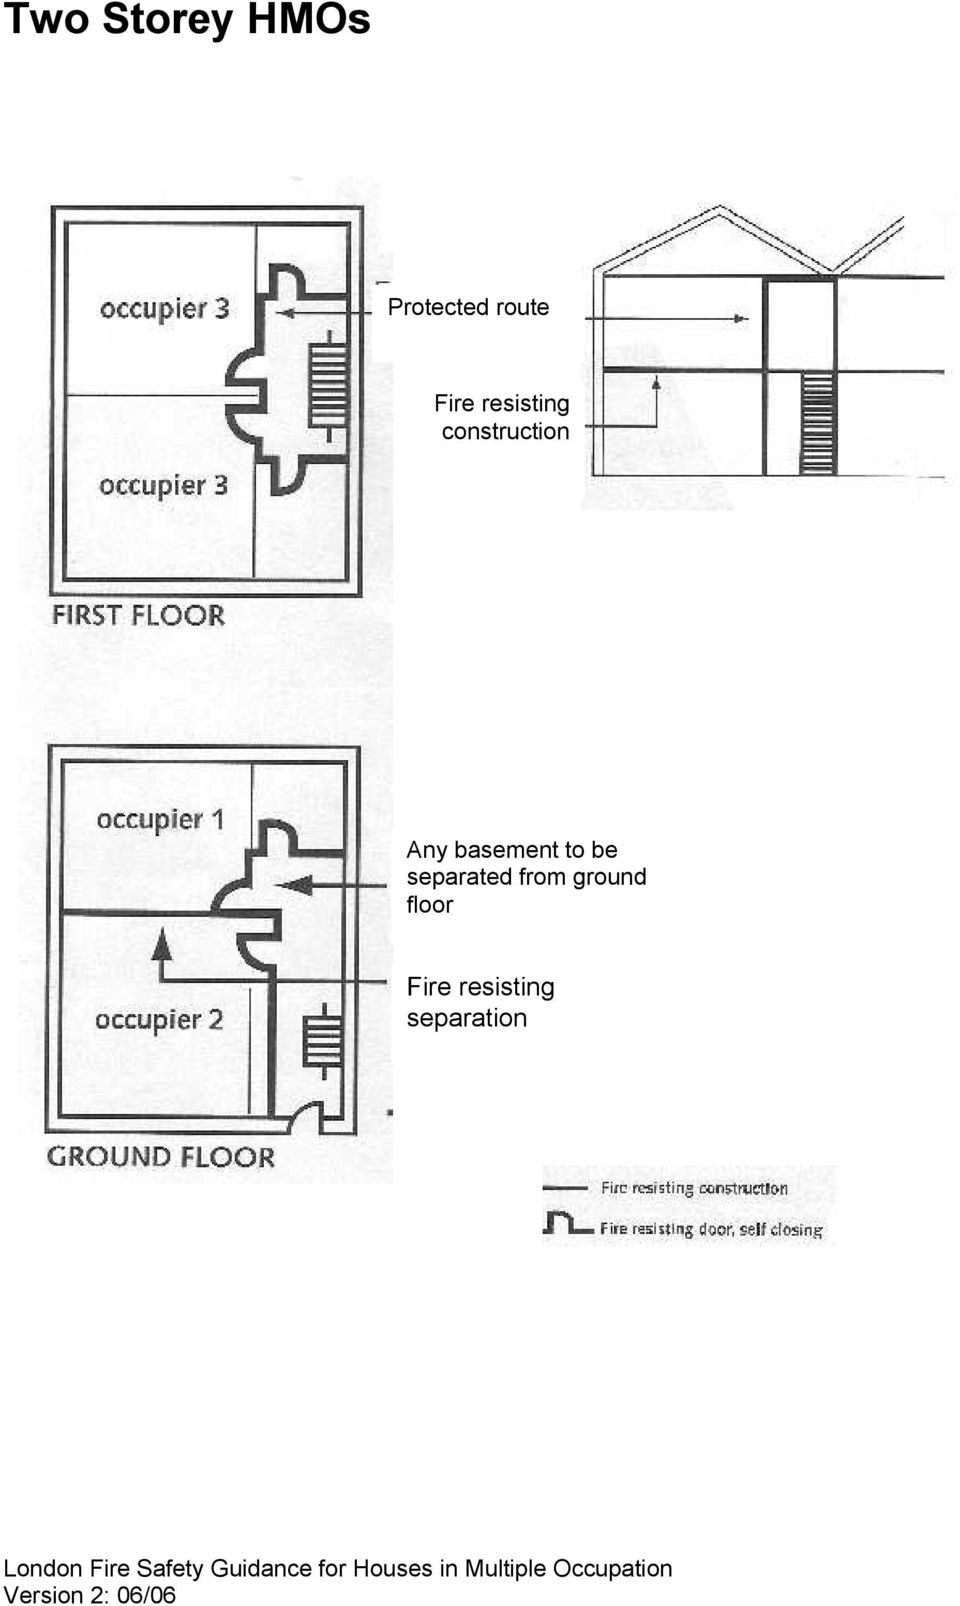 basement to be separated from